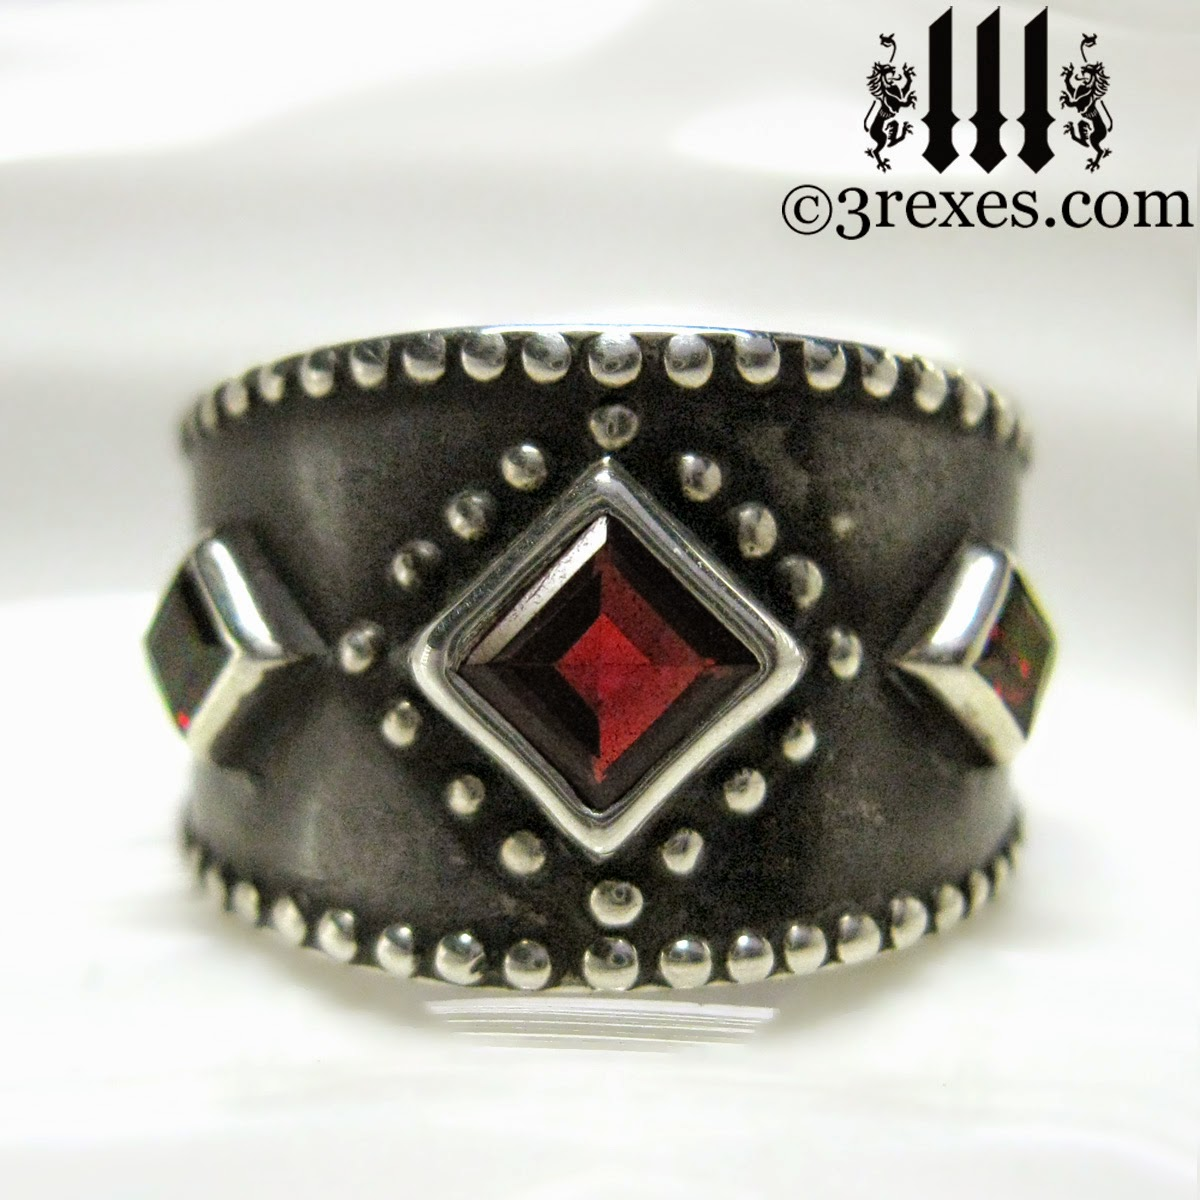 silver 3 wishes medieval wedding ring with garnet